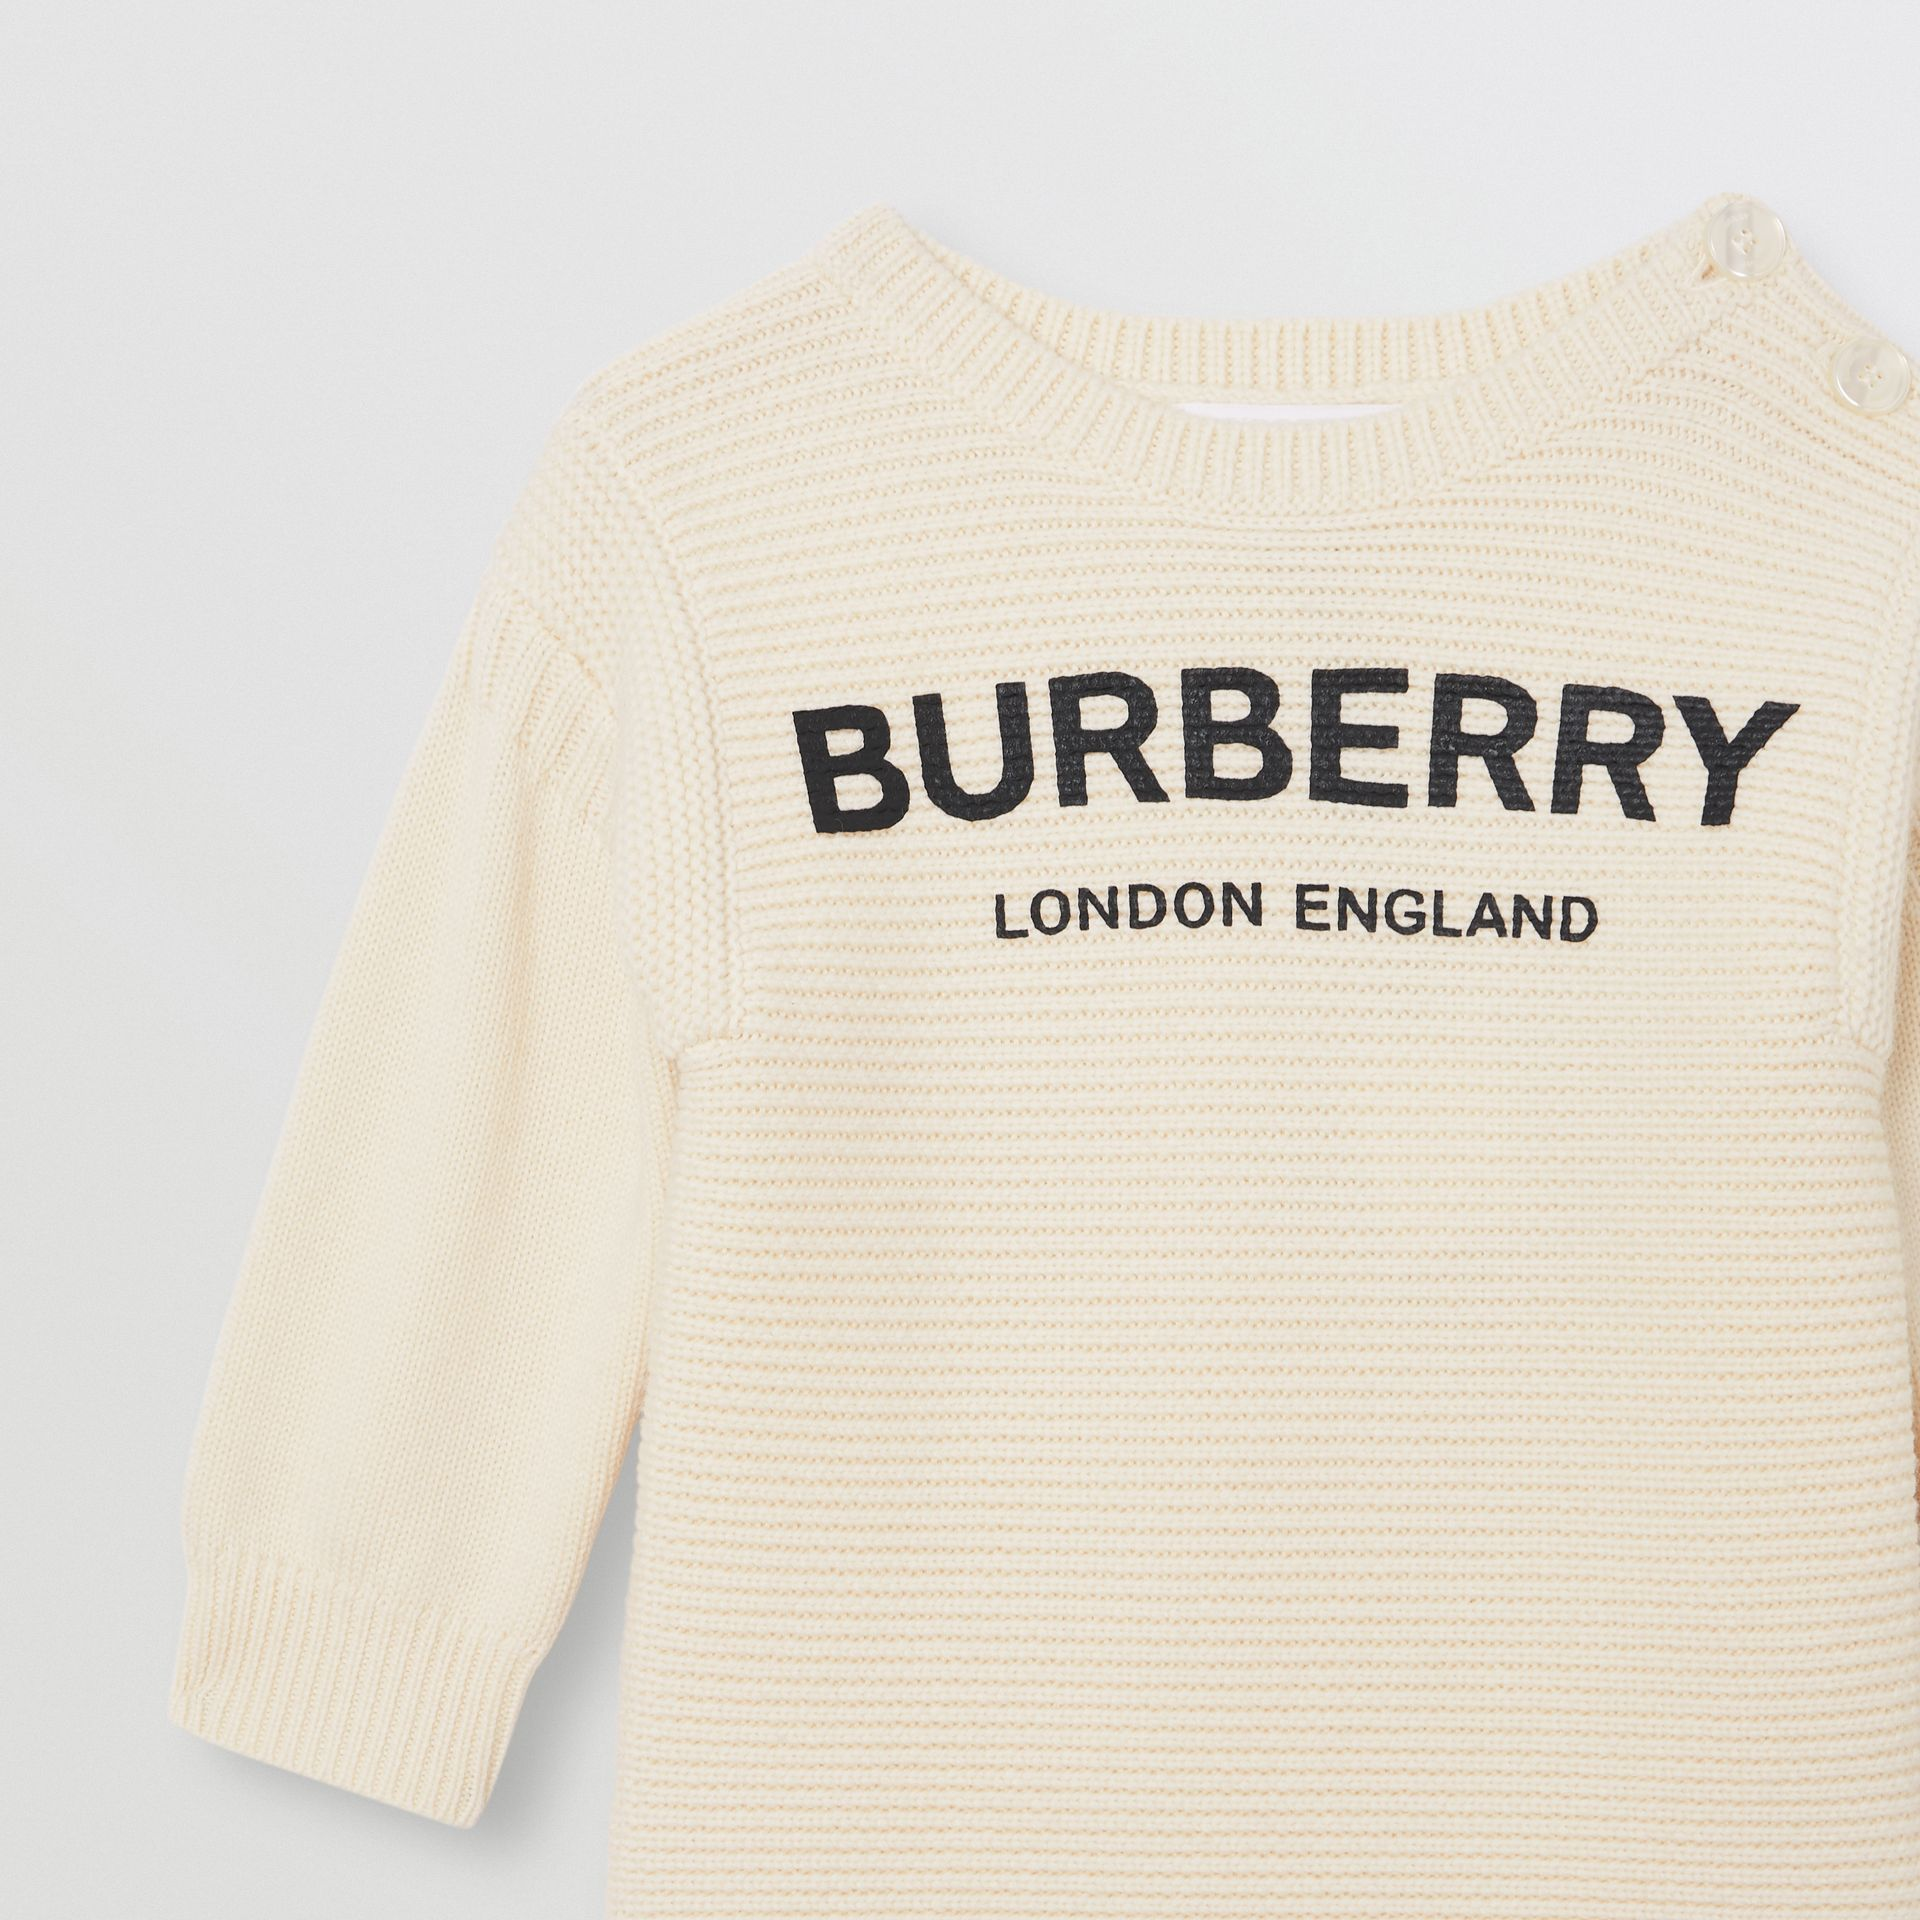 Logo Print Rib Knit Merino Wool Sweater Dress in Ivory - Children | Burberry - gallery image 4